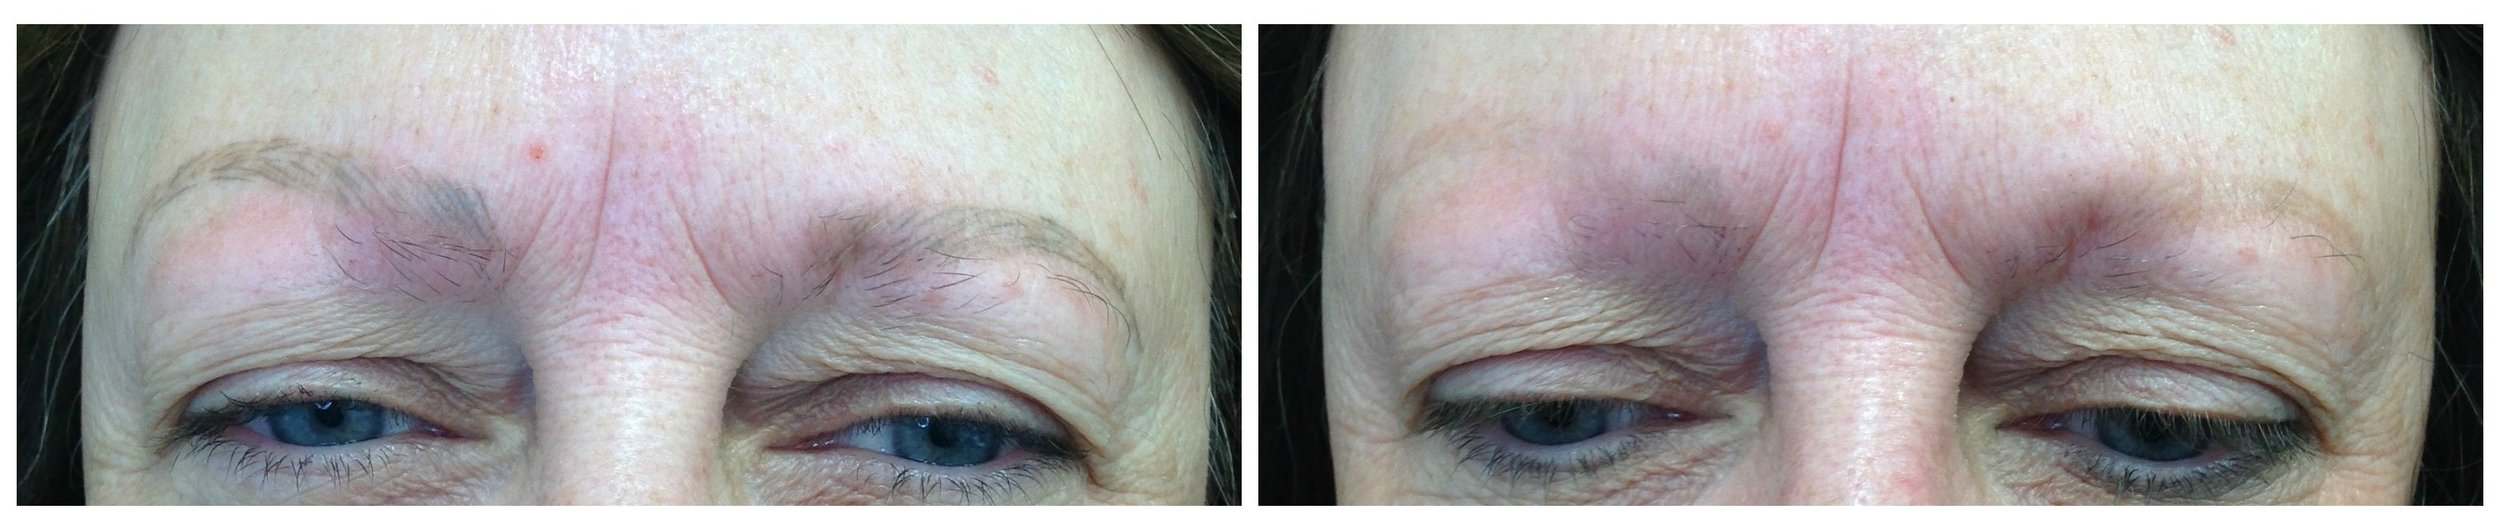 Before: Marked asymmetry with uneven saturation and poor retention of color from improperly executed microblading. After: One session of pigment removal. This client will need an additional treatment before correction of the brows in the proper symmetry, shape and color can be performed.